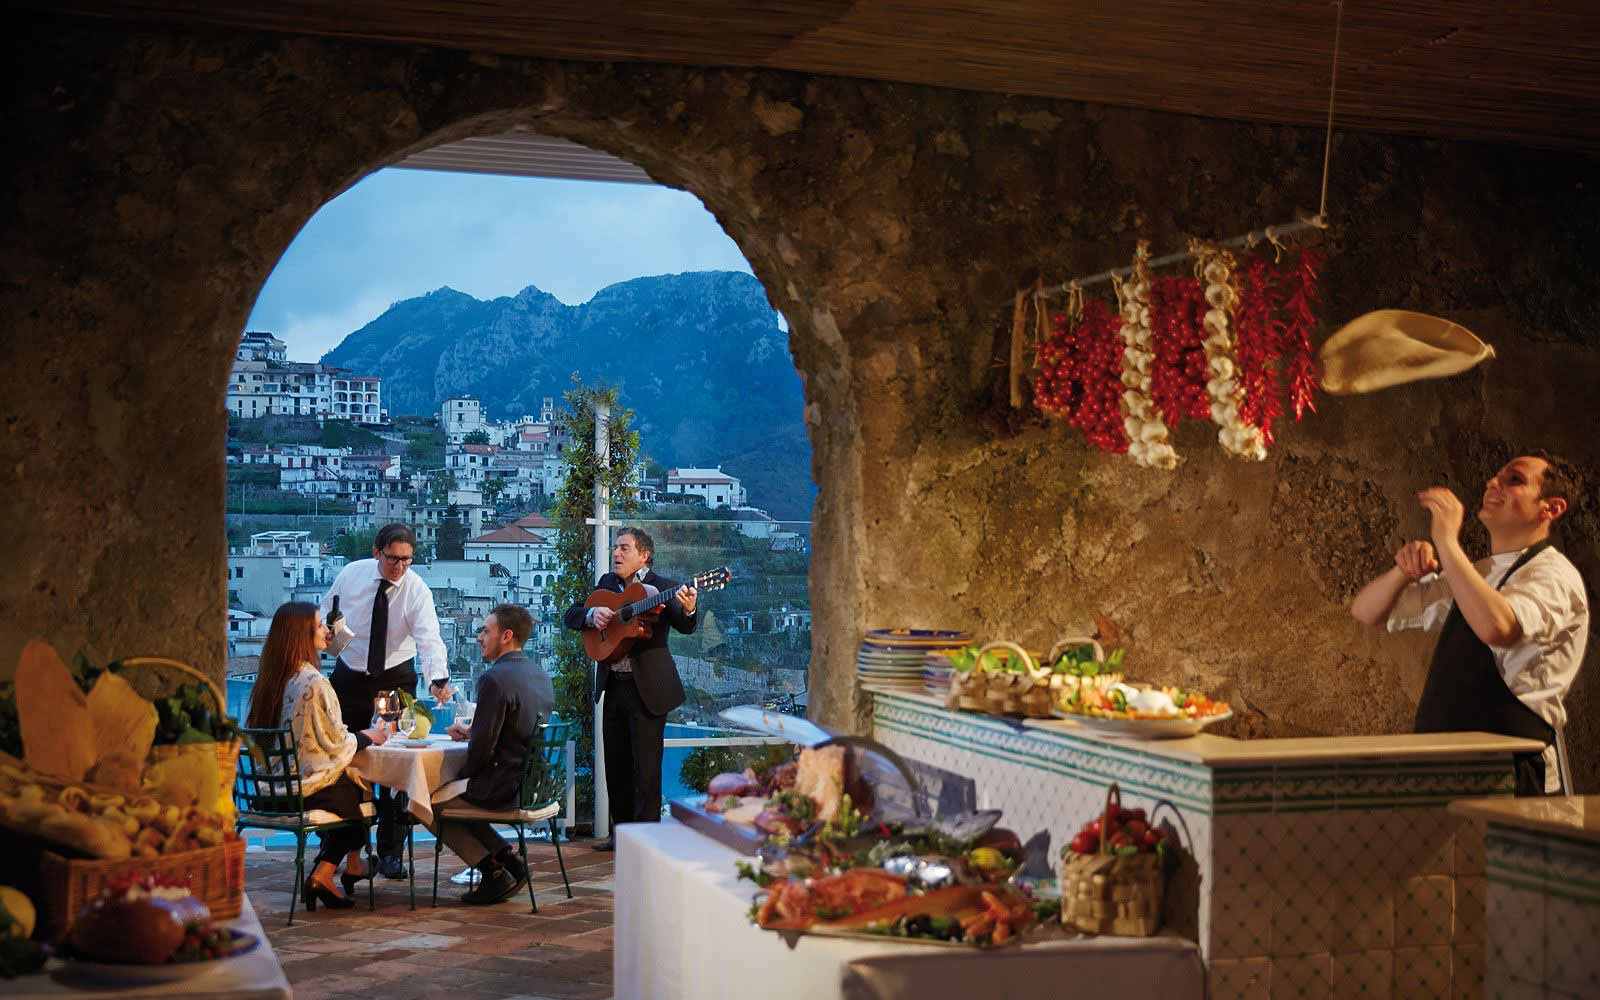 Outdoor dining at the Belmond Hotel Caruso